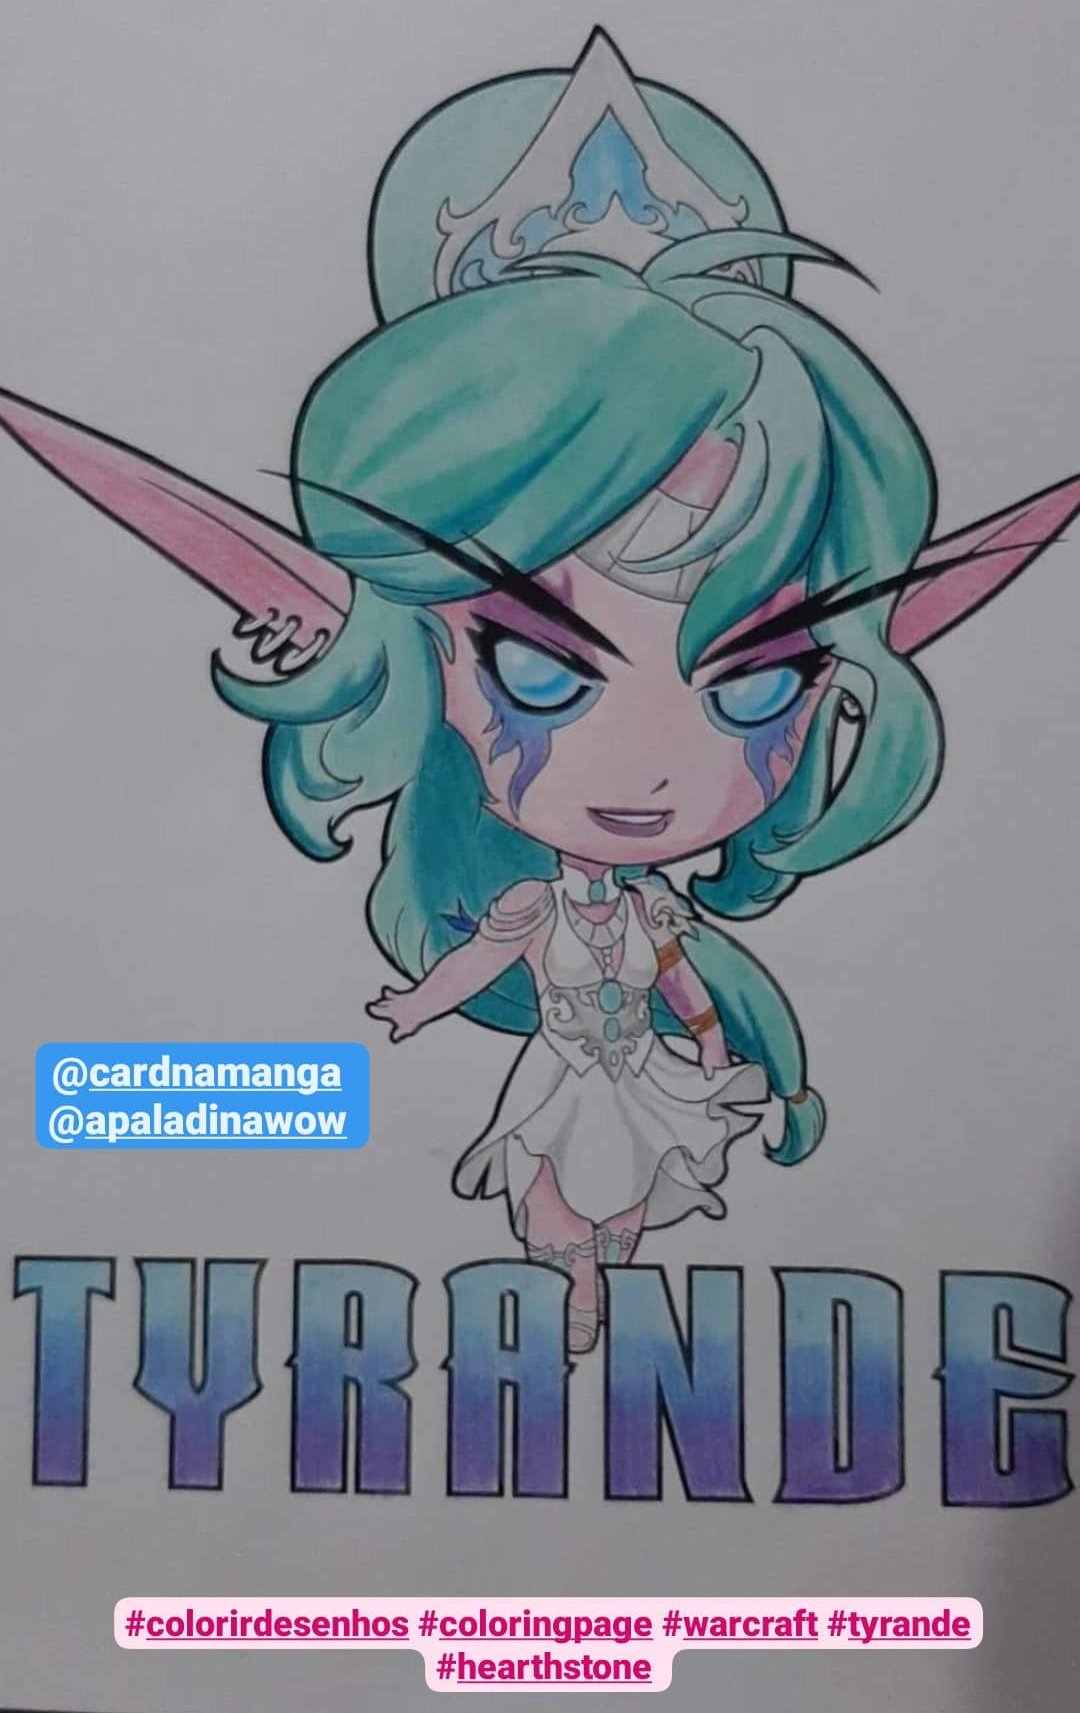 Colorindo a Tyrande - World of Warcraft e Hearthstone - 12